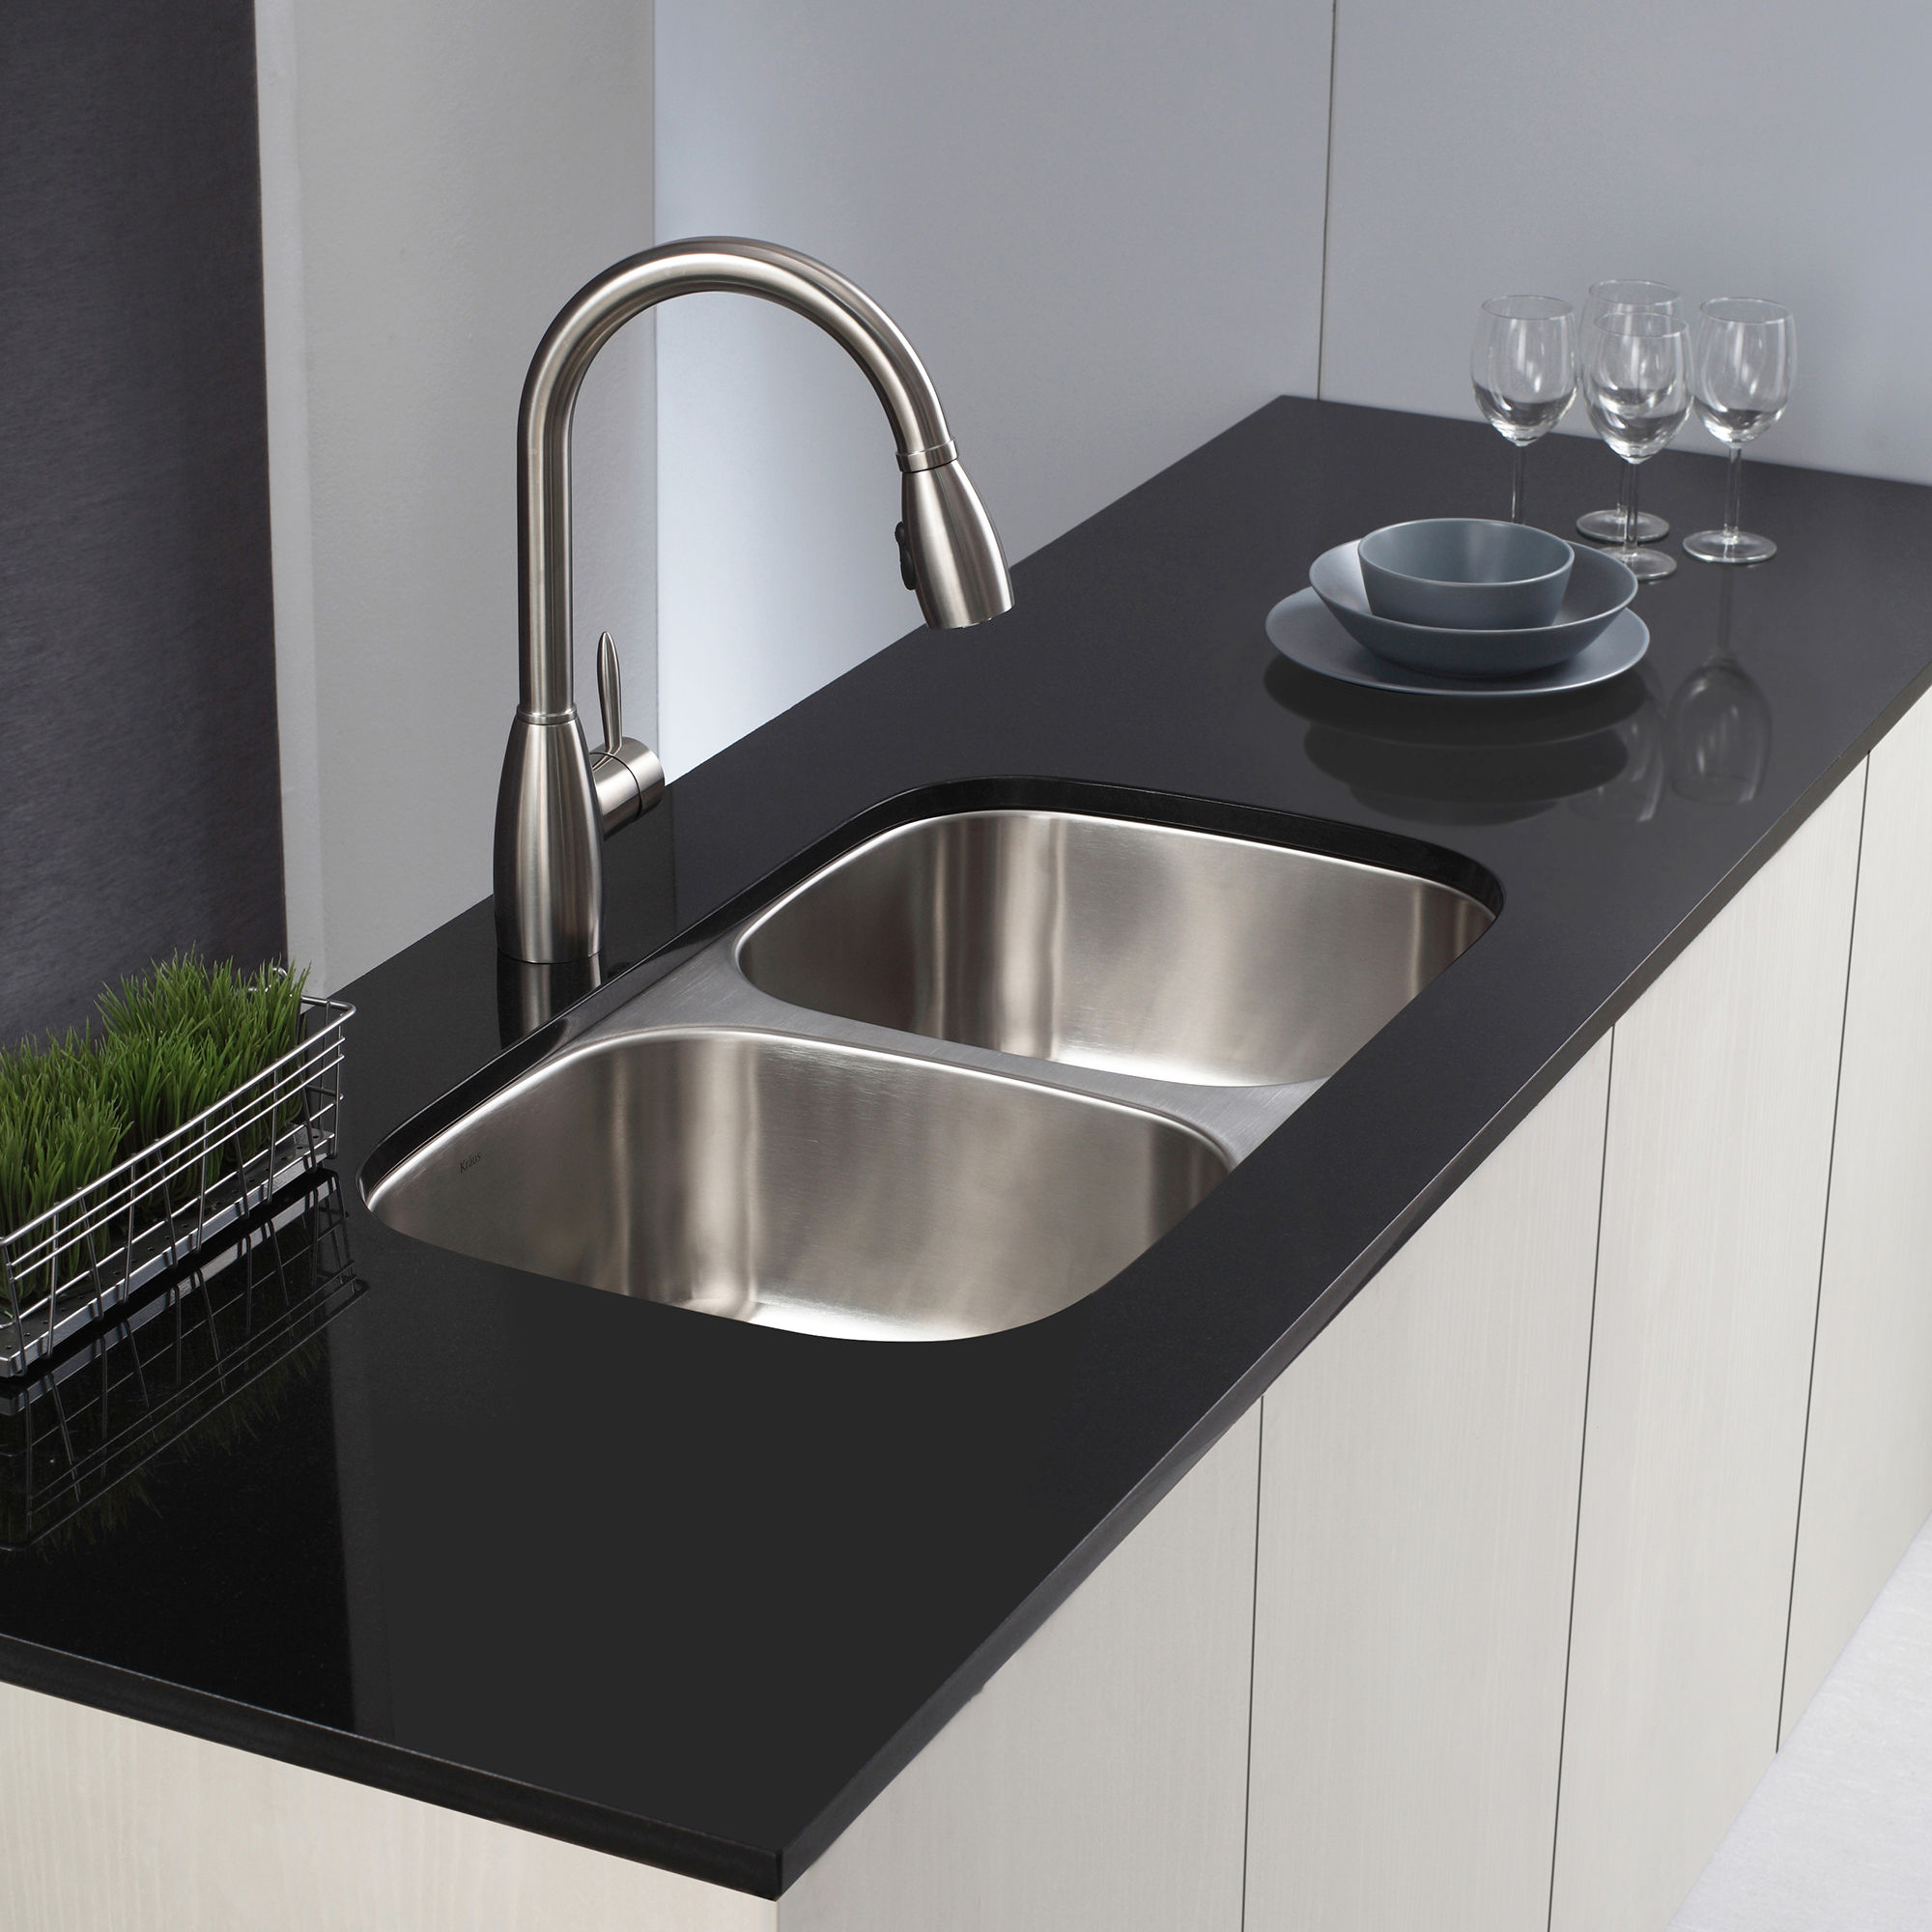 bathroom best faucets delta stainless steel handle parts brushed in sink sinks pegasus kraus black taps peerless kitchen faucet chrome with